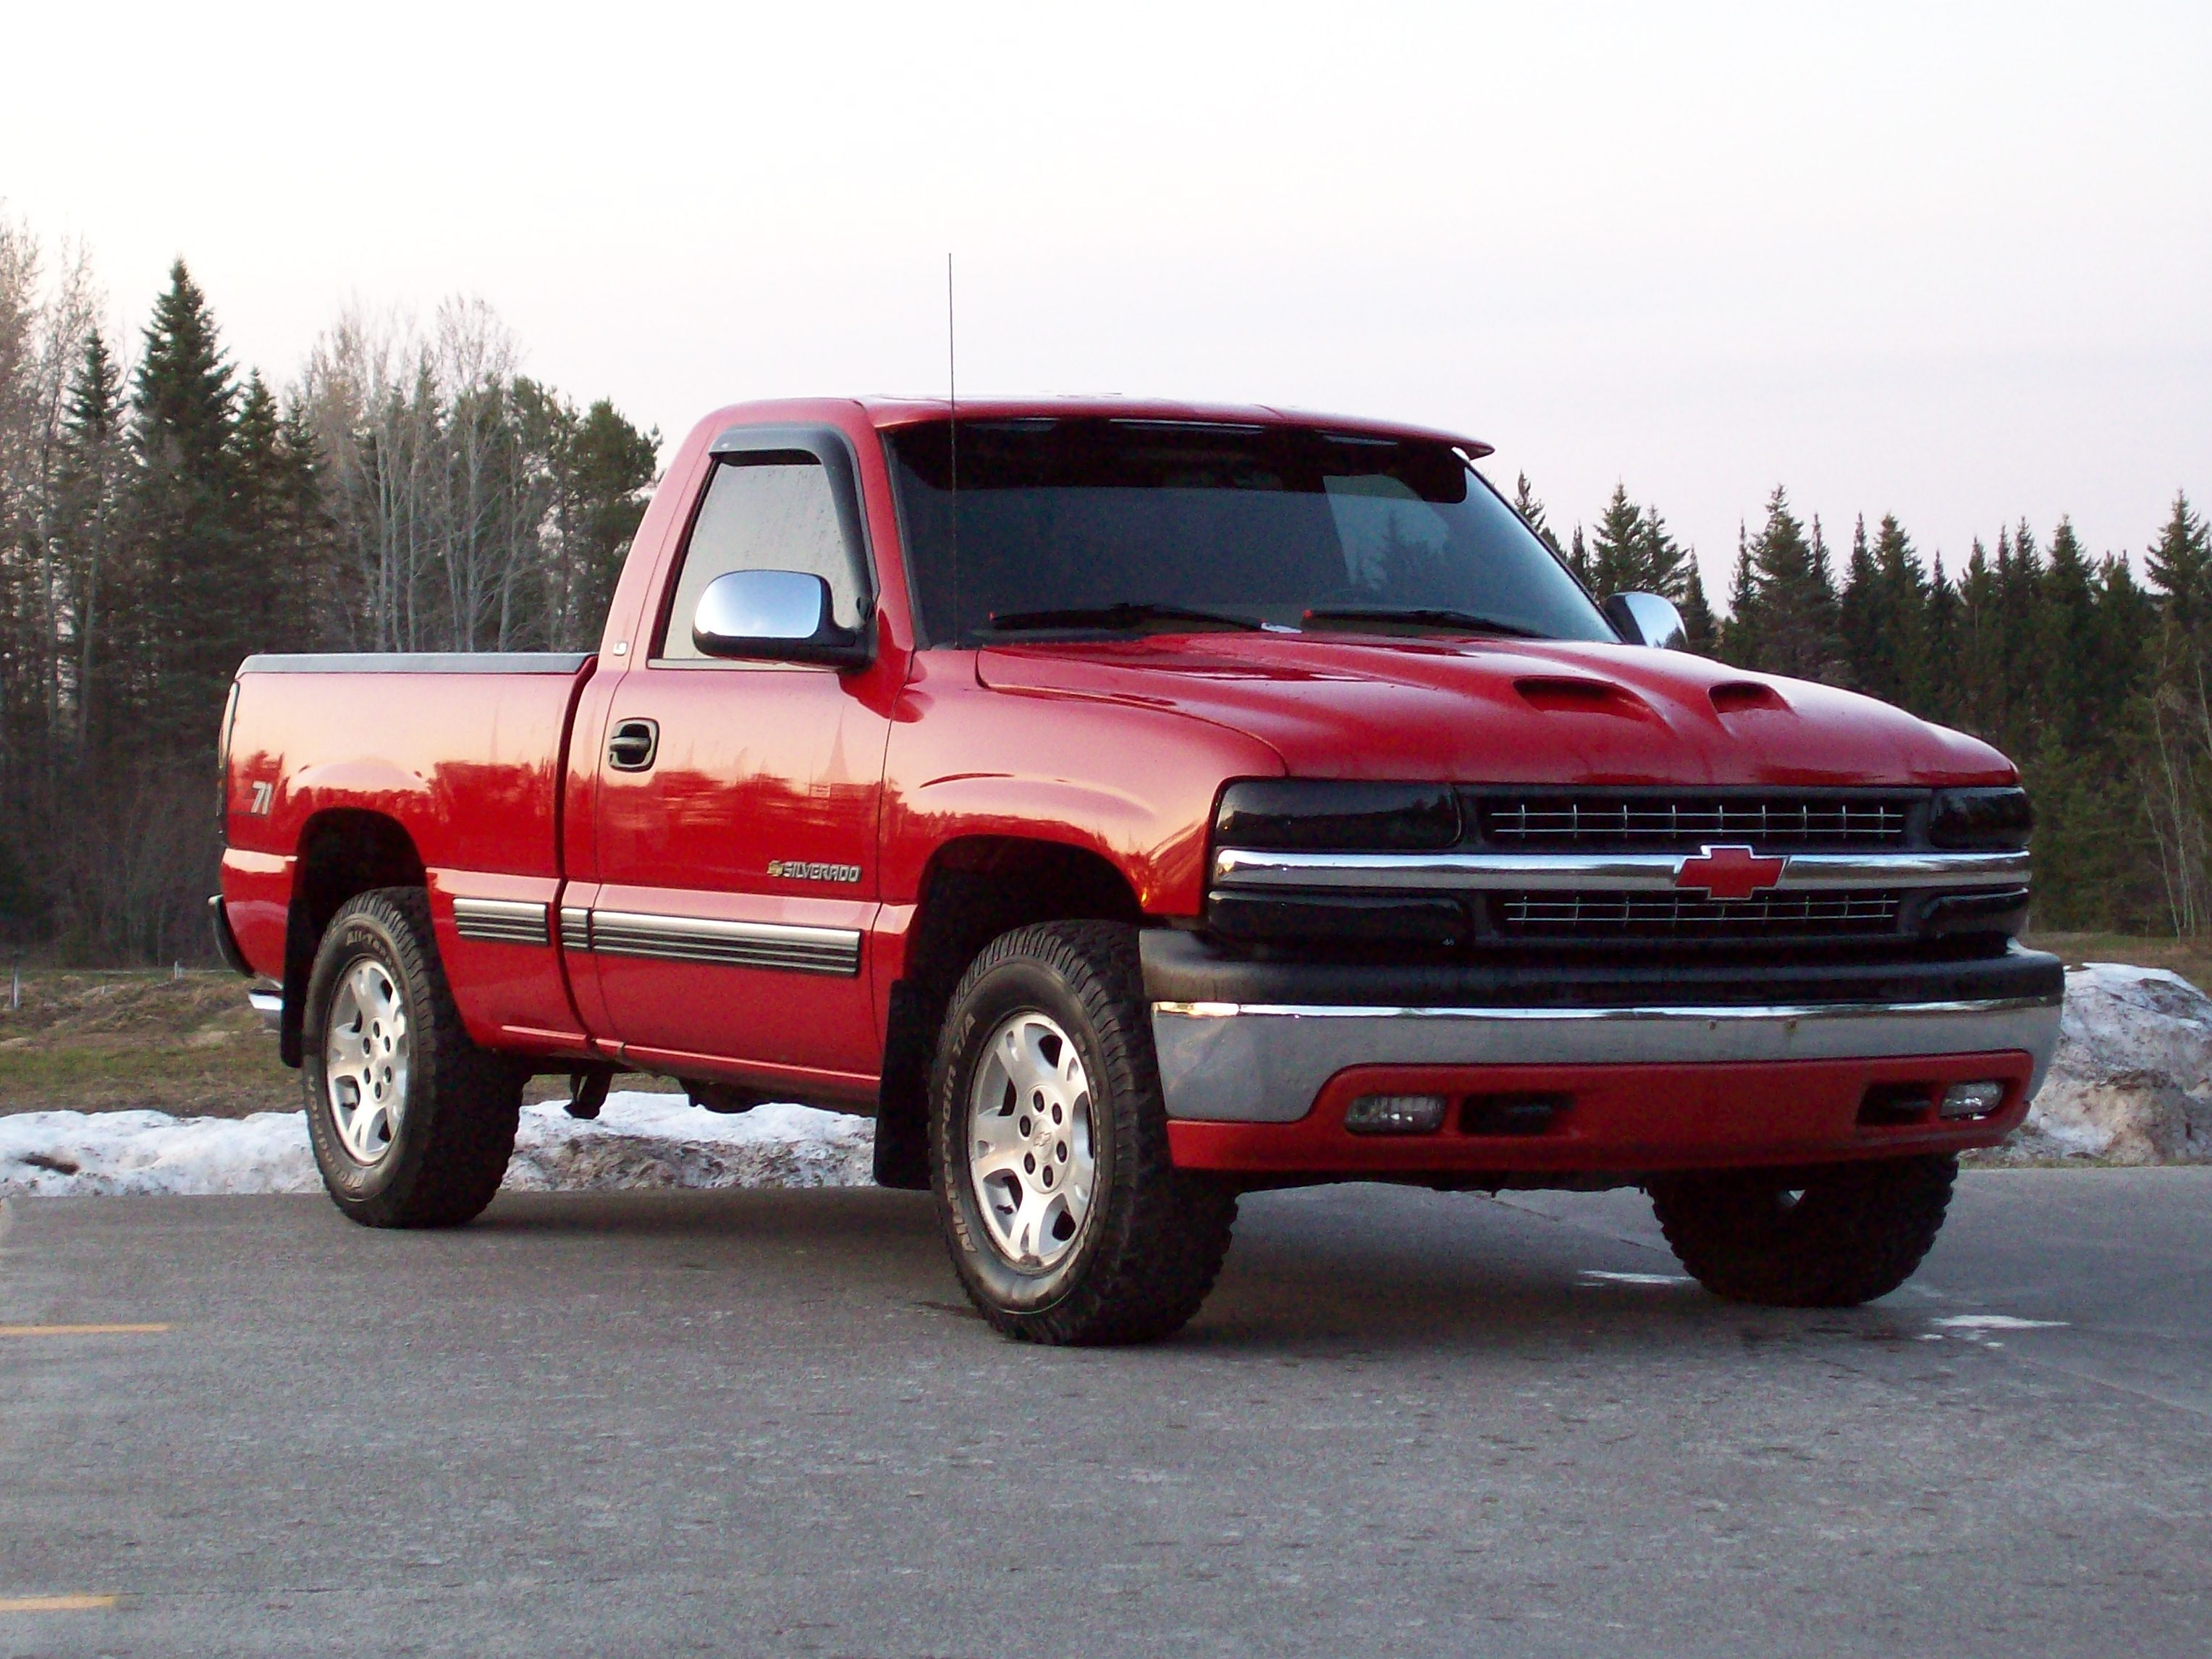 t paulson 1999 chevrolet silverado 1500 regular cab specs photos modification info at cardomain. Black Bedroom Furniture Sets. Home Design Ideas